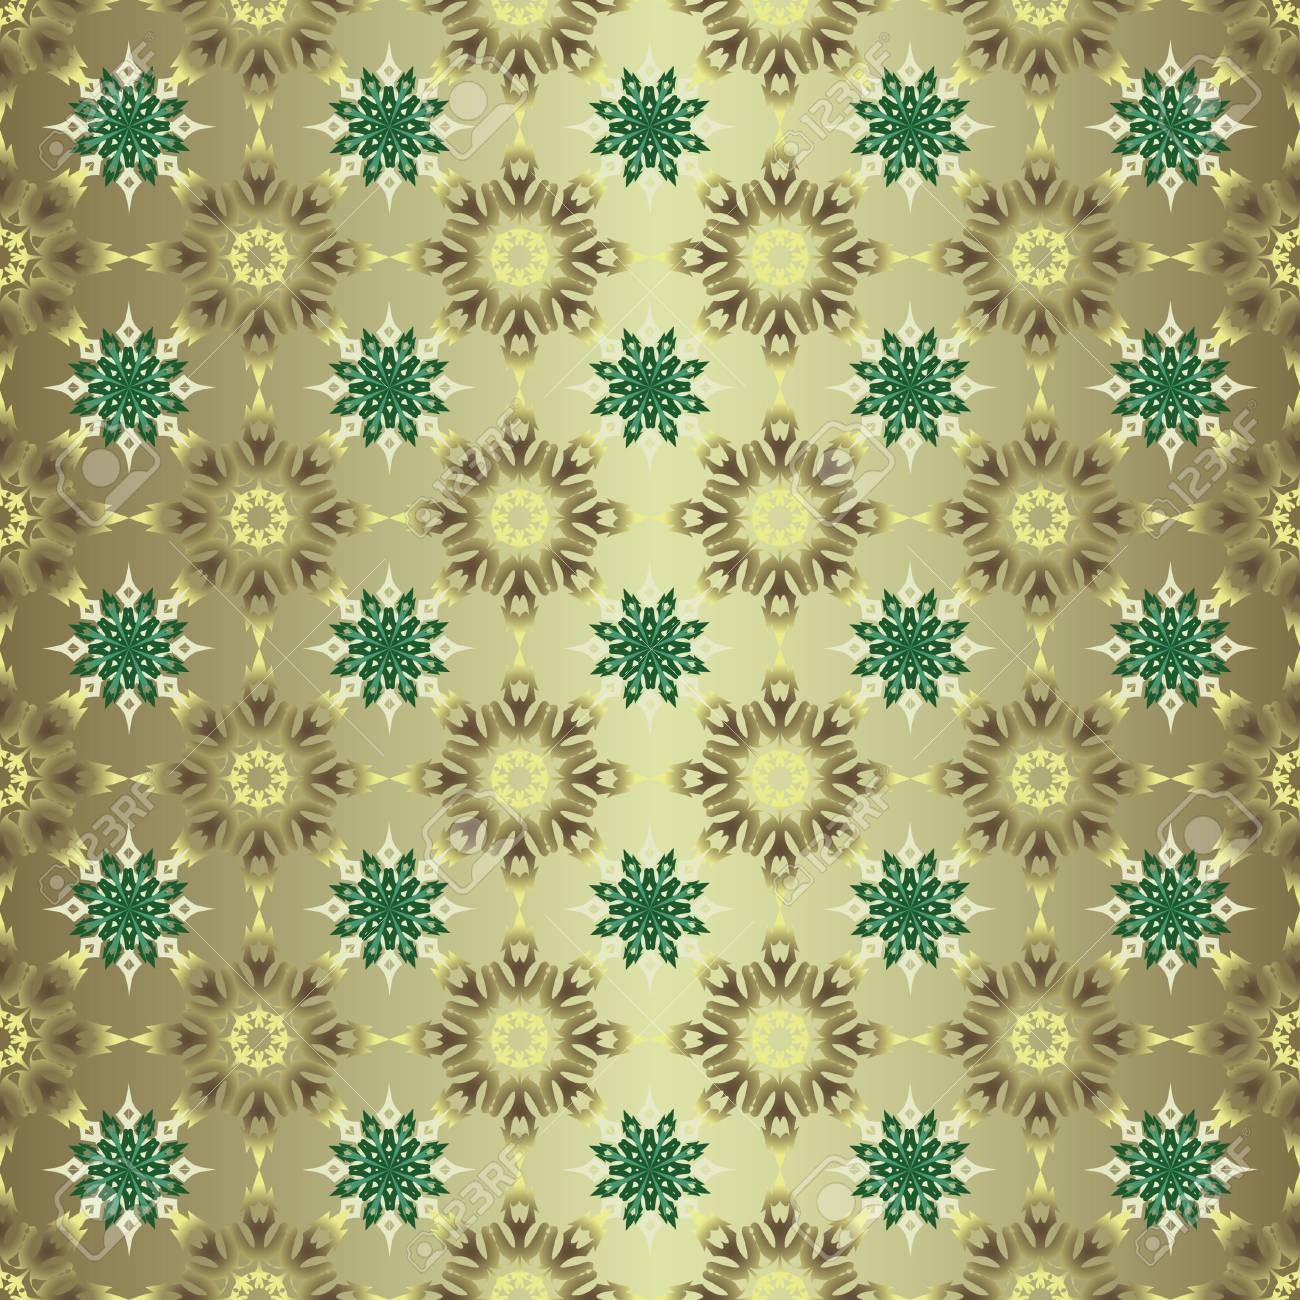 Seamless Christmas Background With Snowflakes Gold Colored Wallpaper Stock Vector